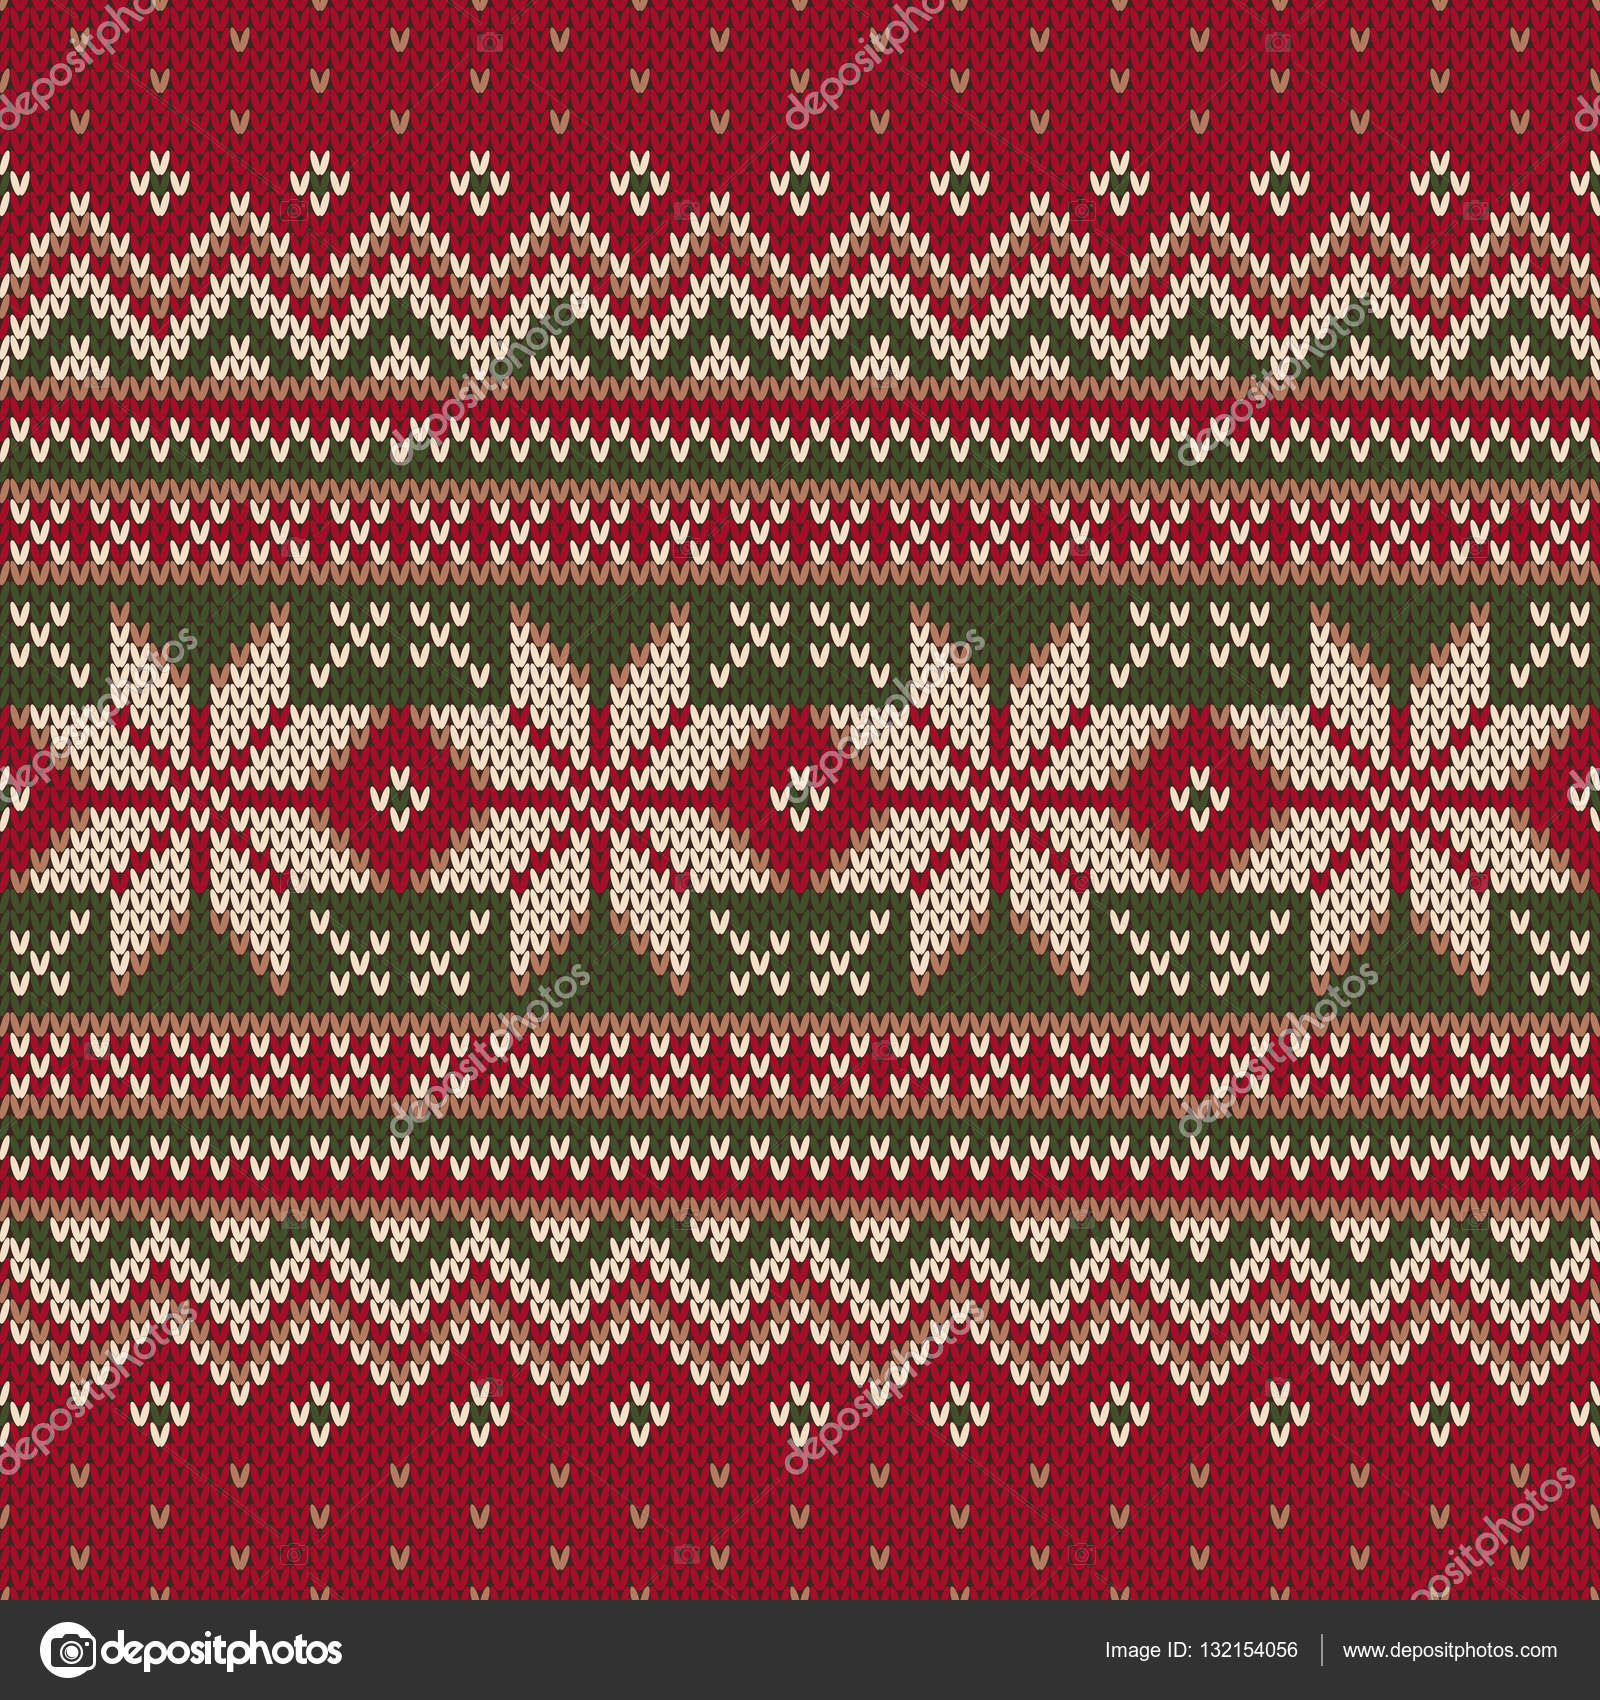 Winter Holiday Fair Isle Knitted Pattern. Vector Seamless Knitting ...